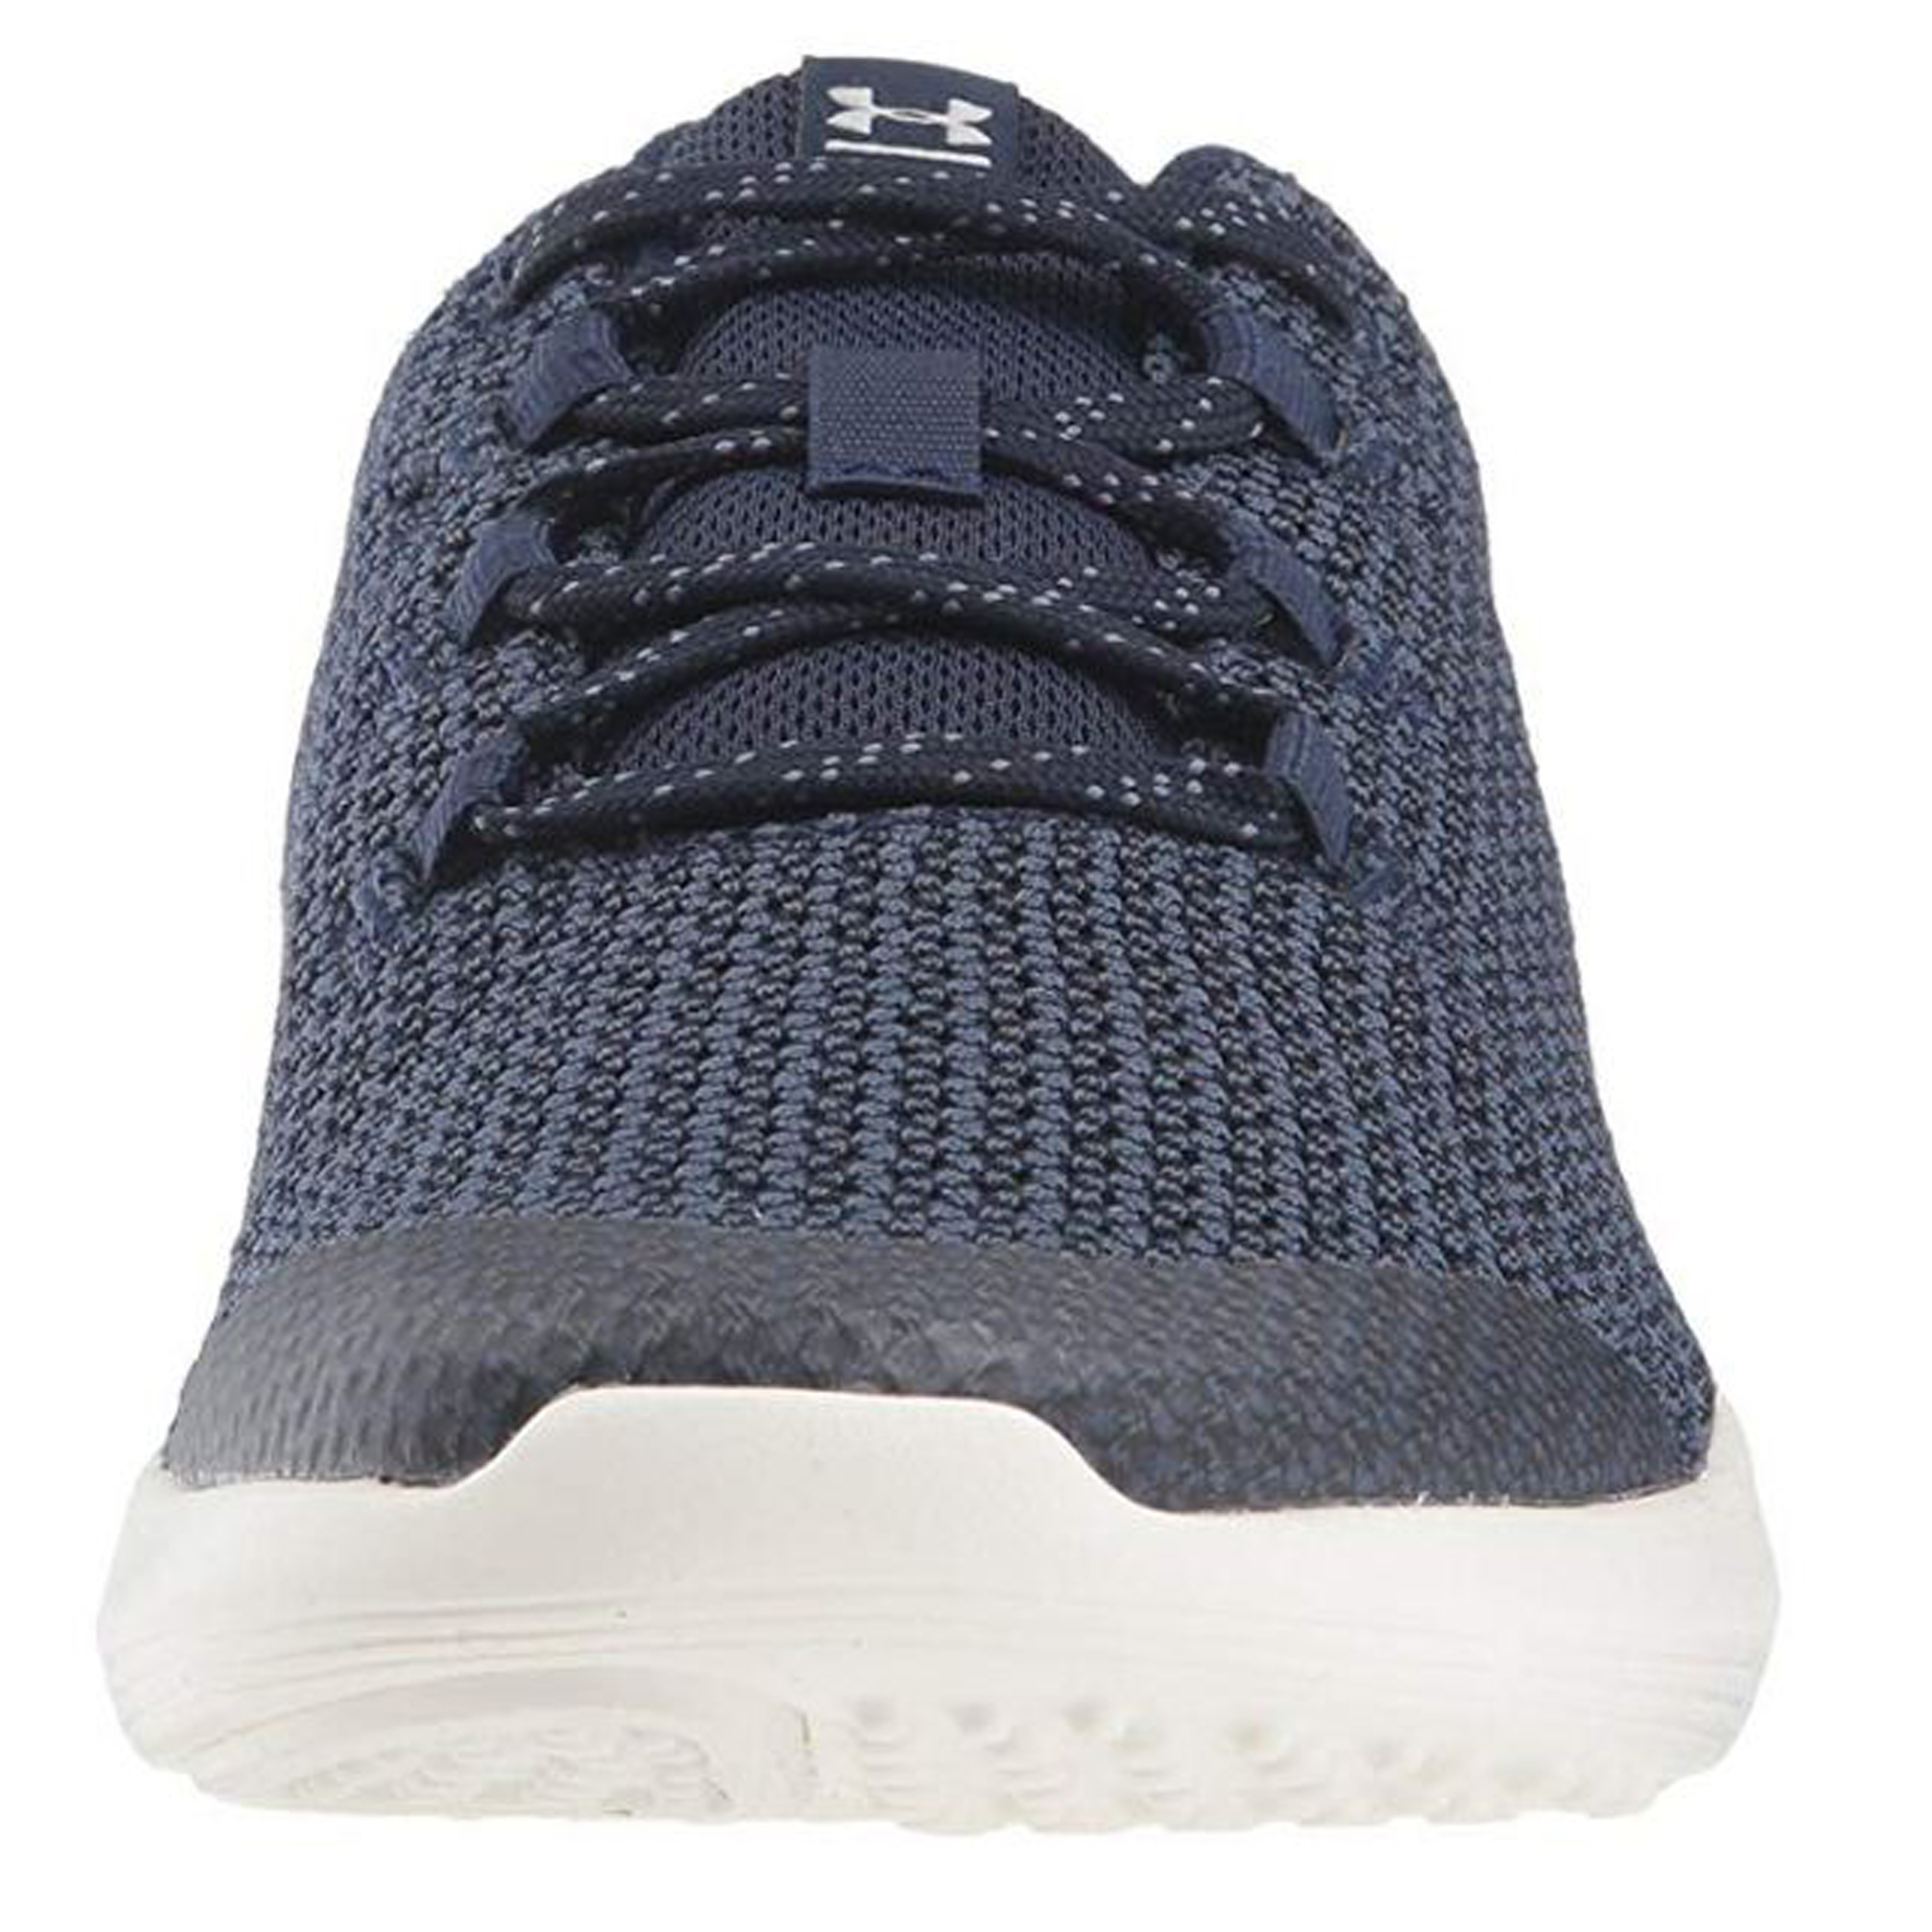 Boys Trainers Under Armour Kids BGS Ripple Shoes Lace Up Sports Running New